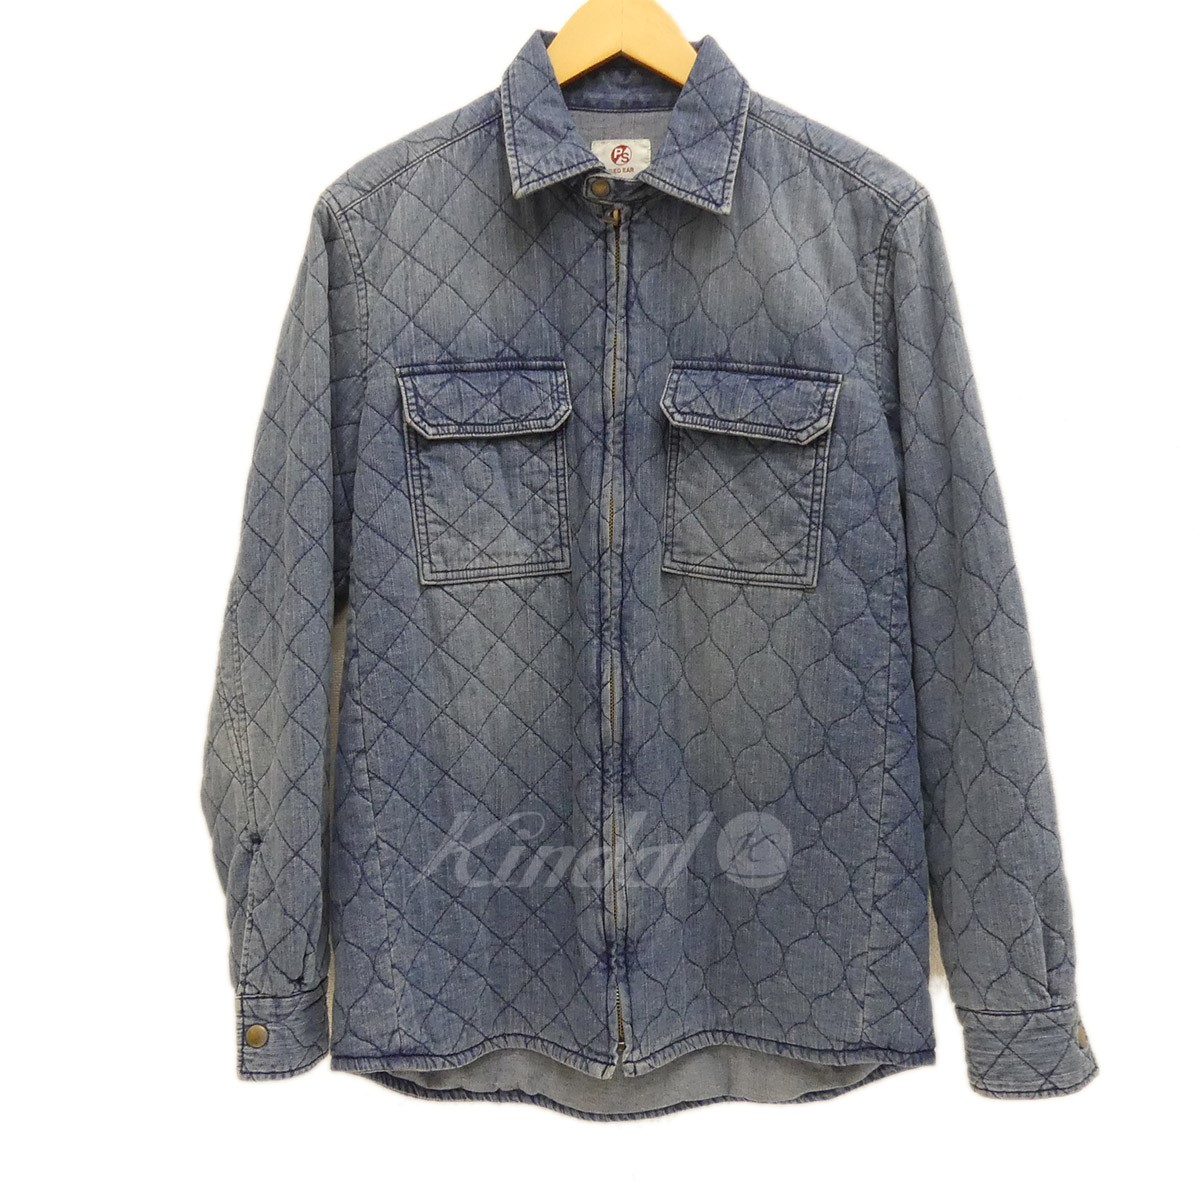 【中古】RED EAR Wadded Denim Red Ear Shirt-Jacket 2017AW 【送料無料】 【152683】 【KIND1550】